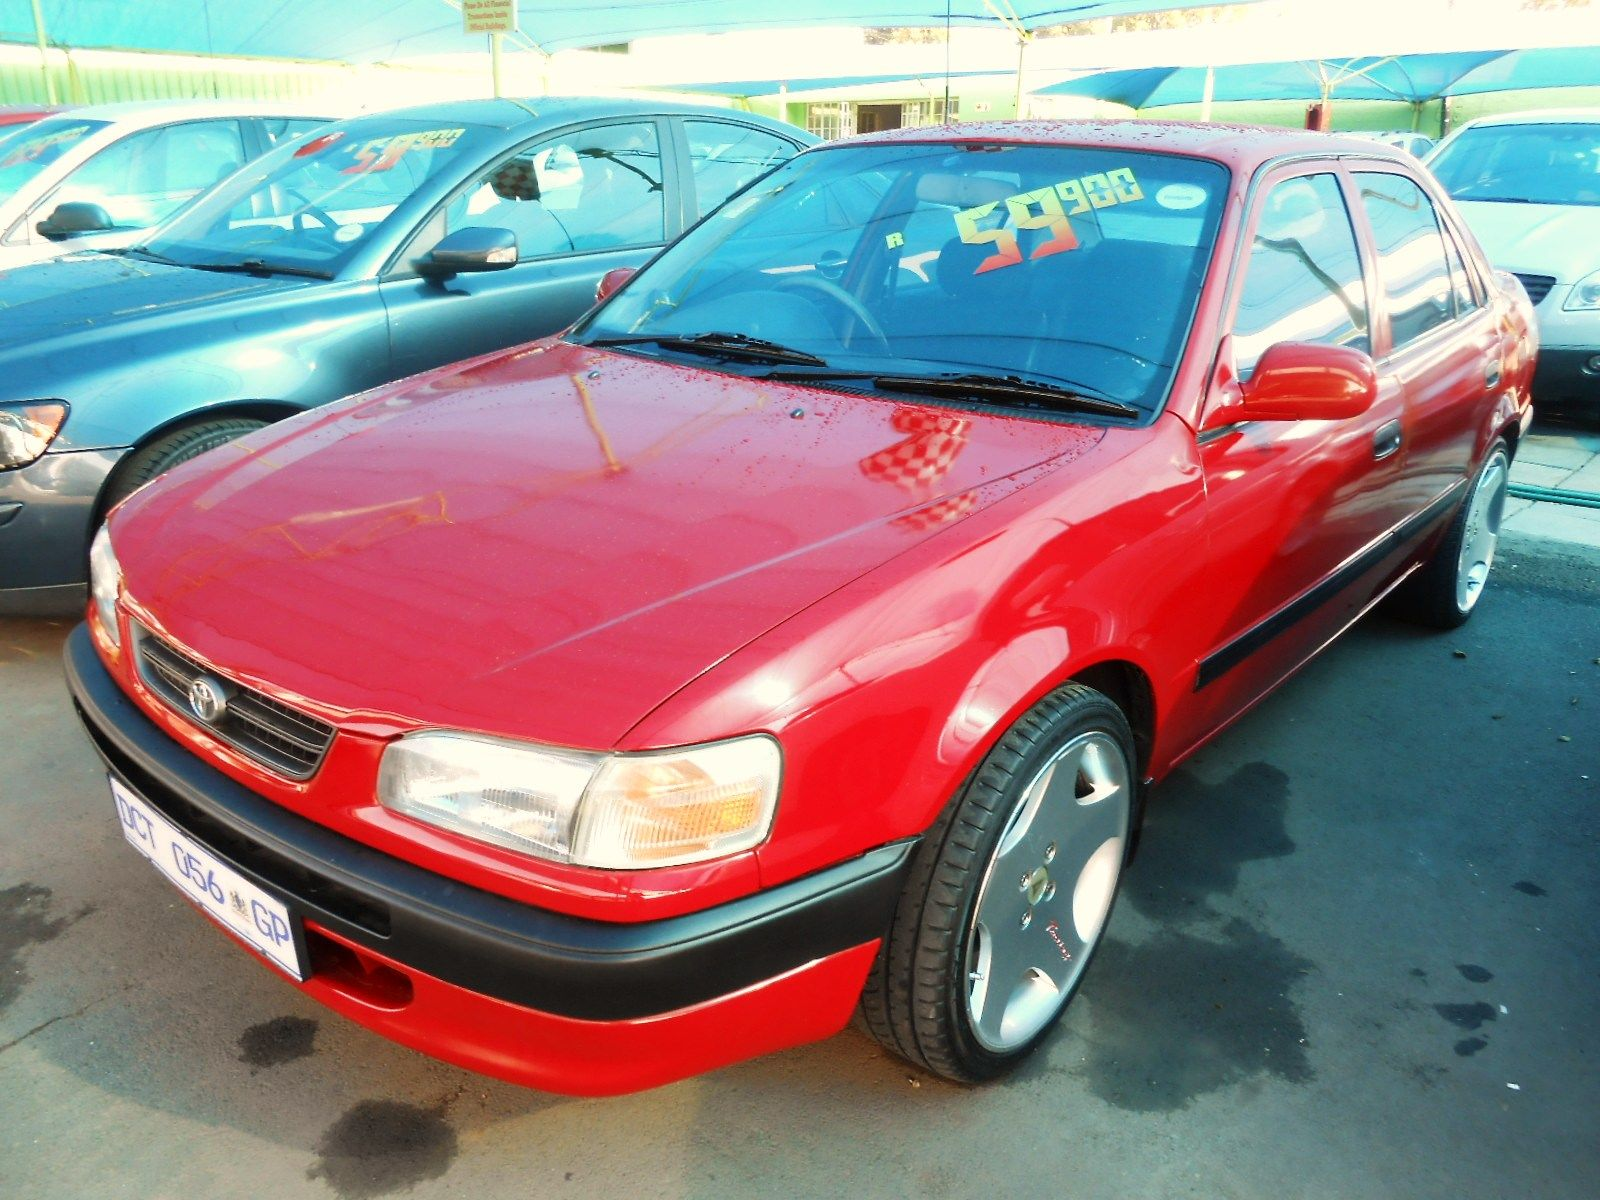 Toyota Corolla Rxi 20v For Sale Durban The Amazing Modified Cars Pictures Photo 1997 Rsi Source Mahindra Finance Portal Used Jeep Commander 650 Di 2002 In